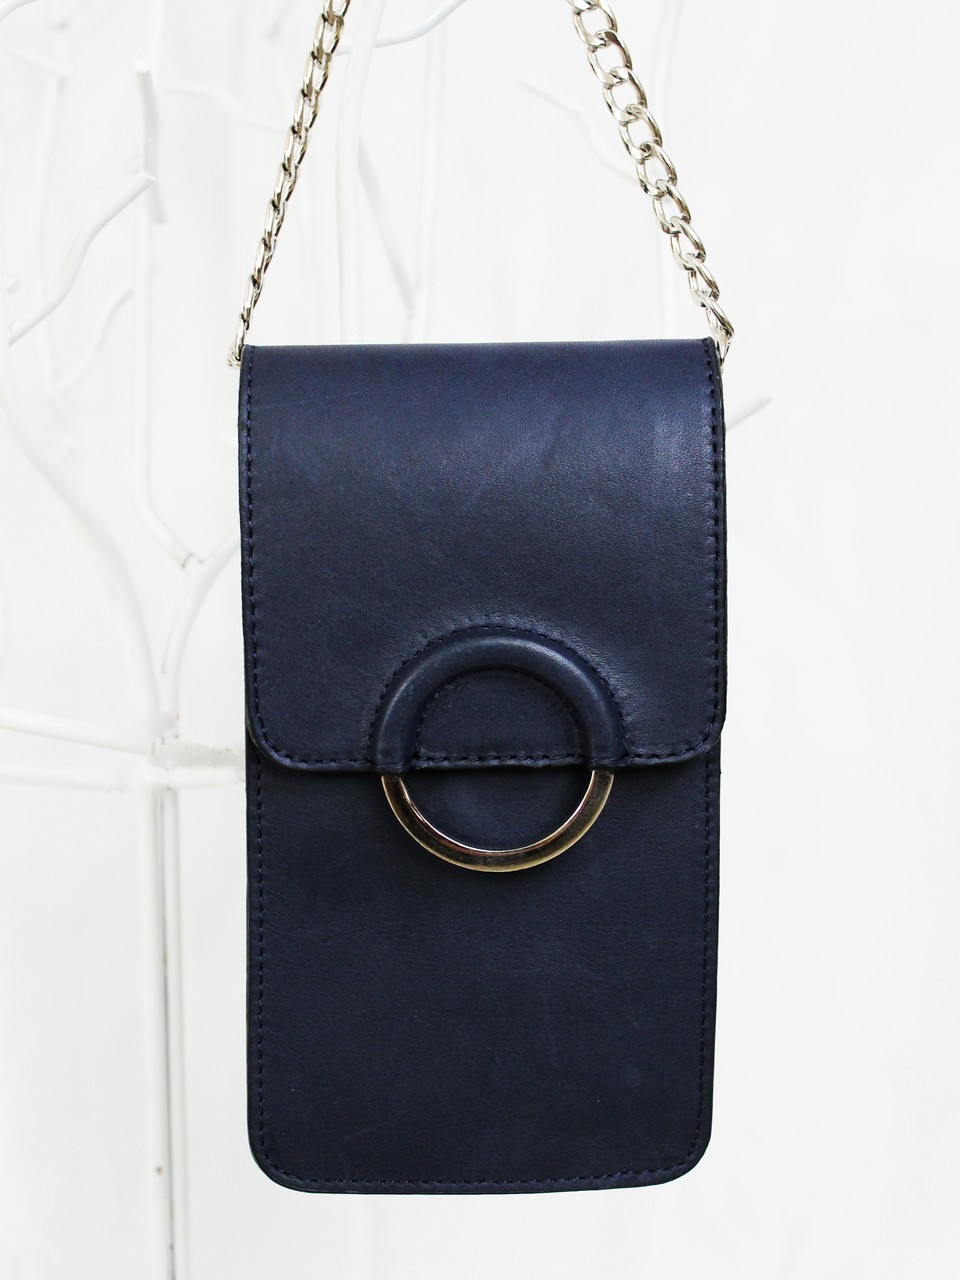 Genuine Leather Chain Strap Bag